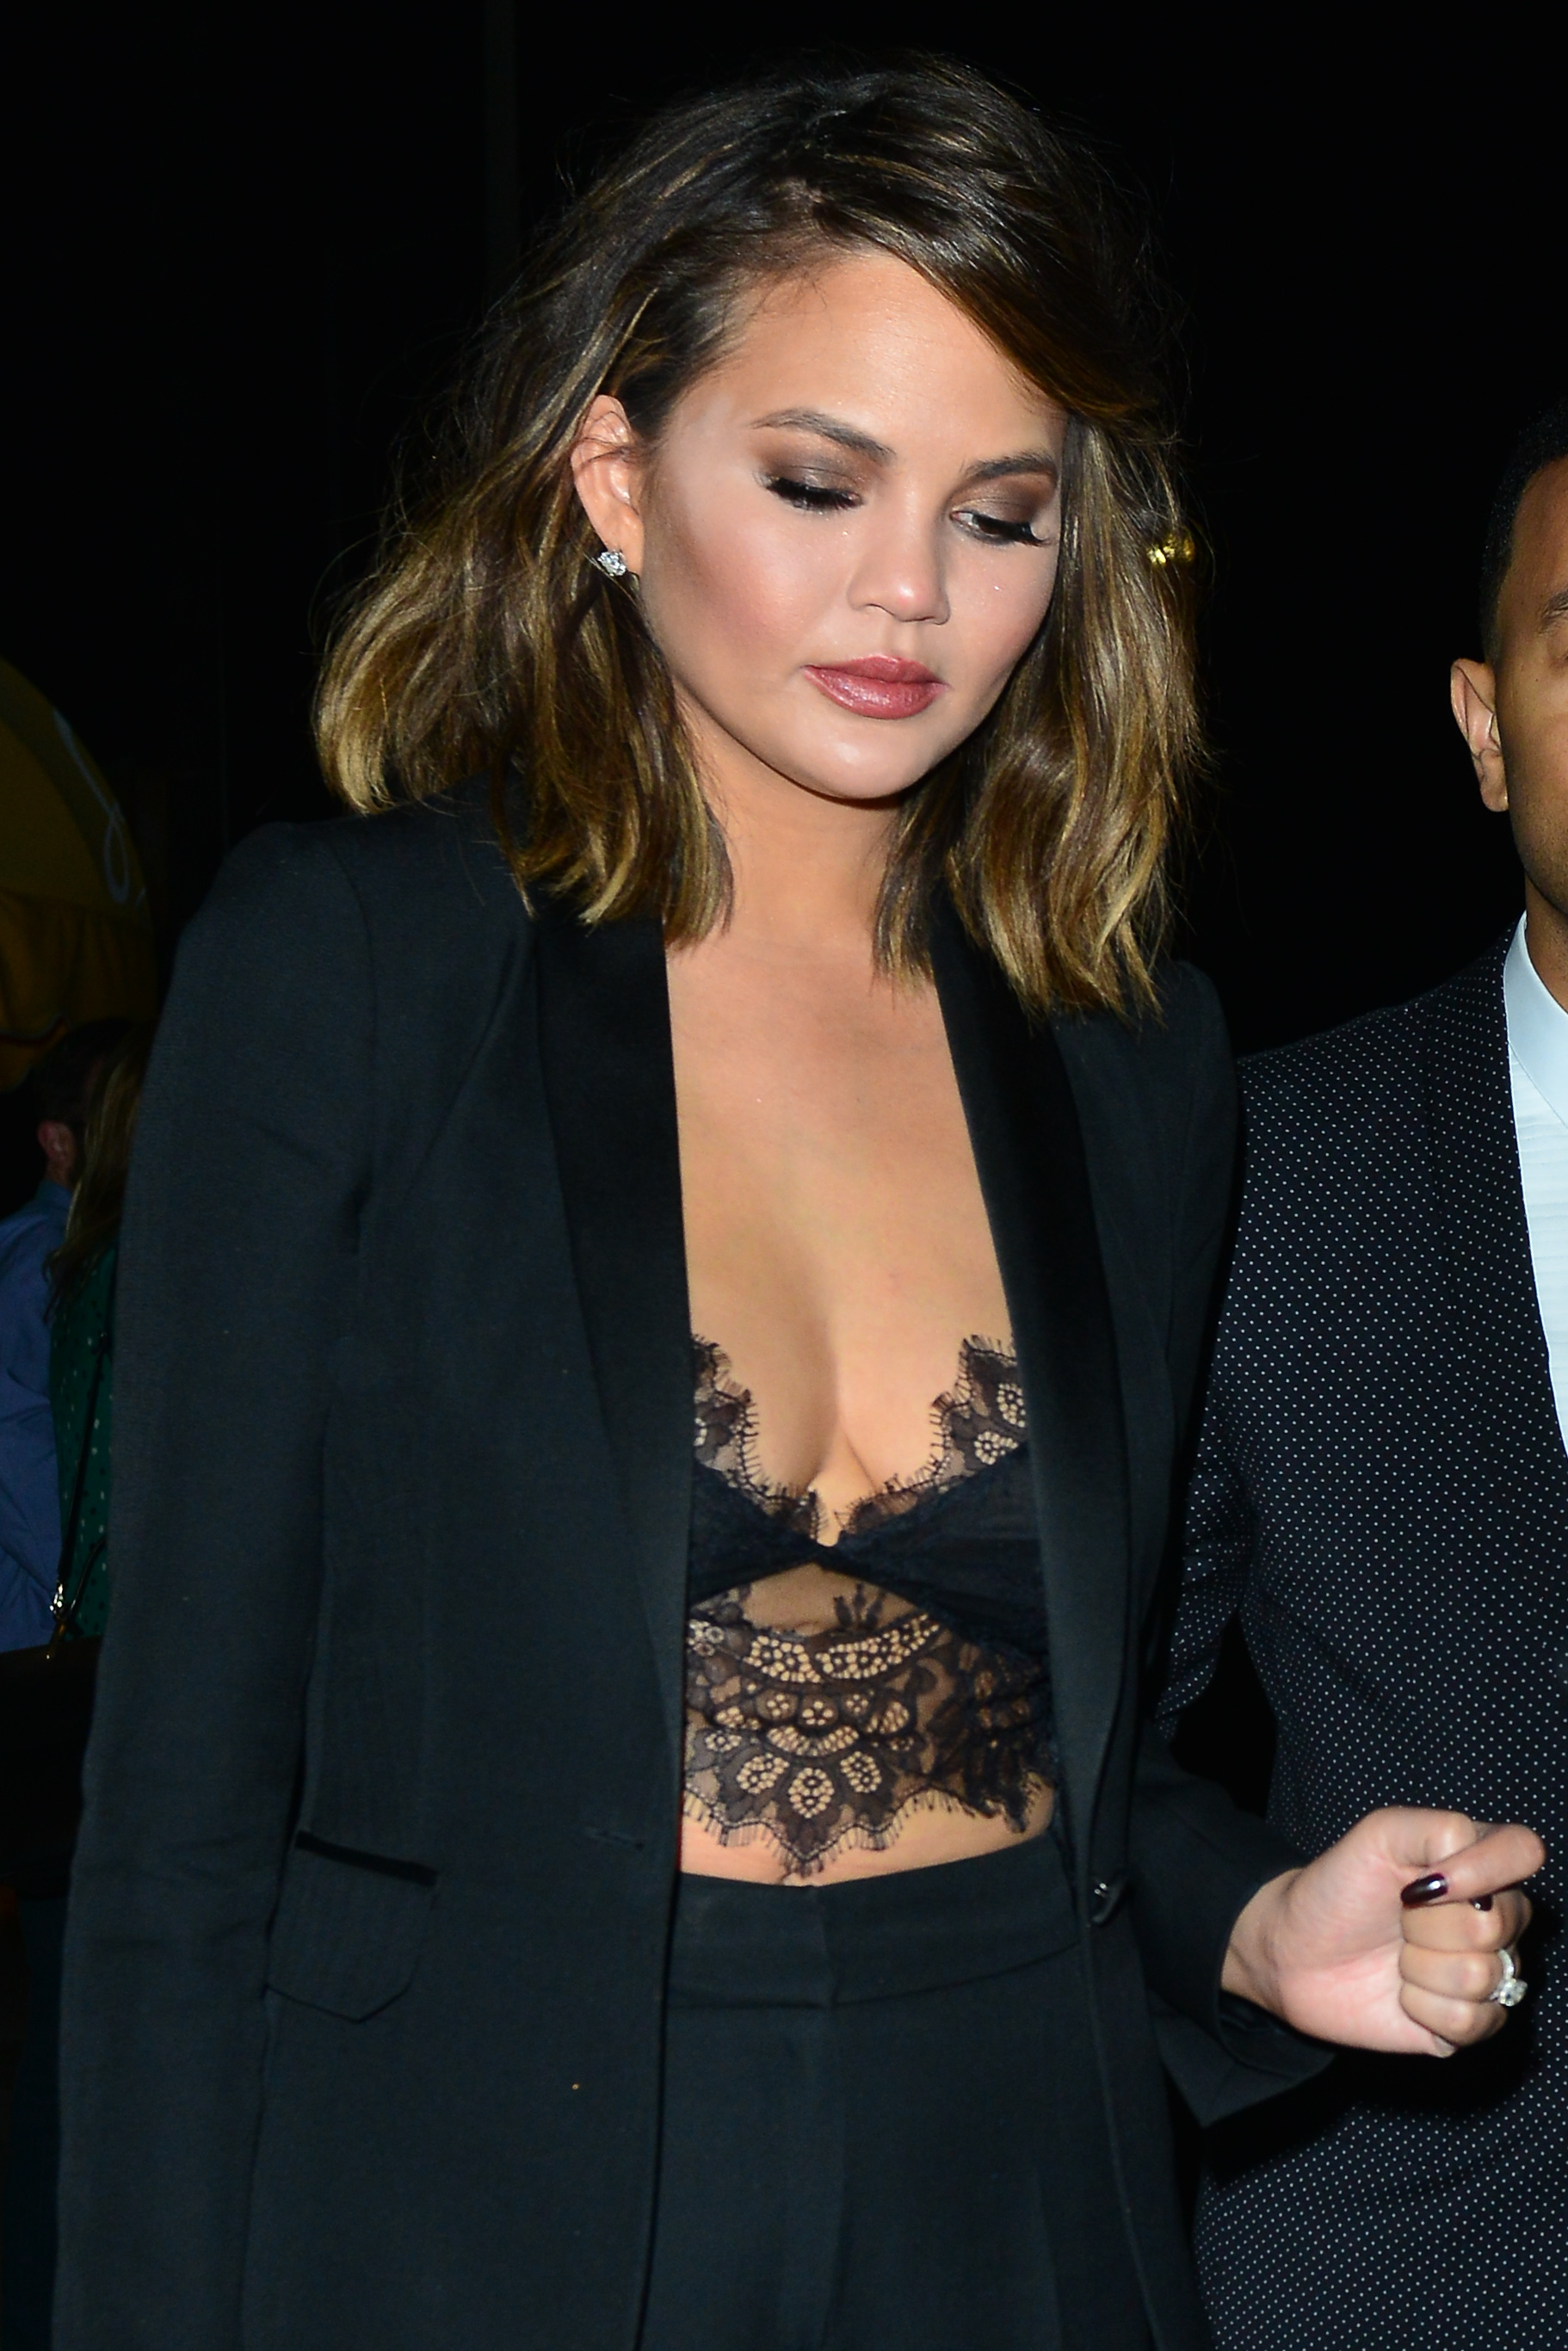 Chrissy Teigen and John Legend celebrate Valentine's Day at Giorgio Baldi restaurant in Santa Monica                                    Featuring: Chrissy Teigen                  Where: Santa Monica, California, United States                  When: 14 Feb 2017                  Credit: WENN.com